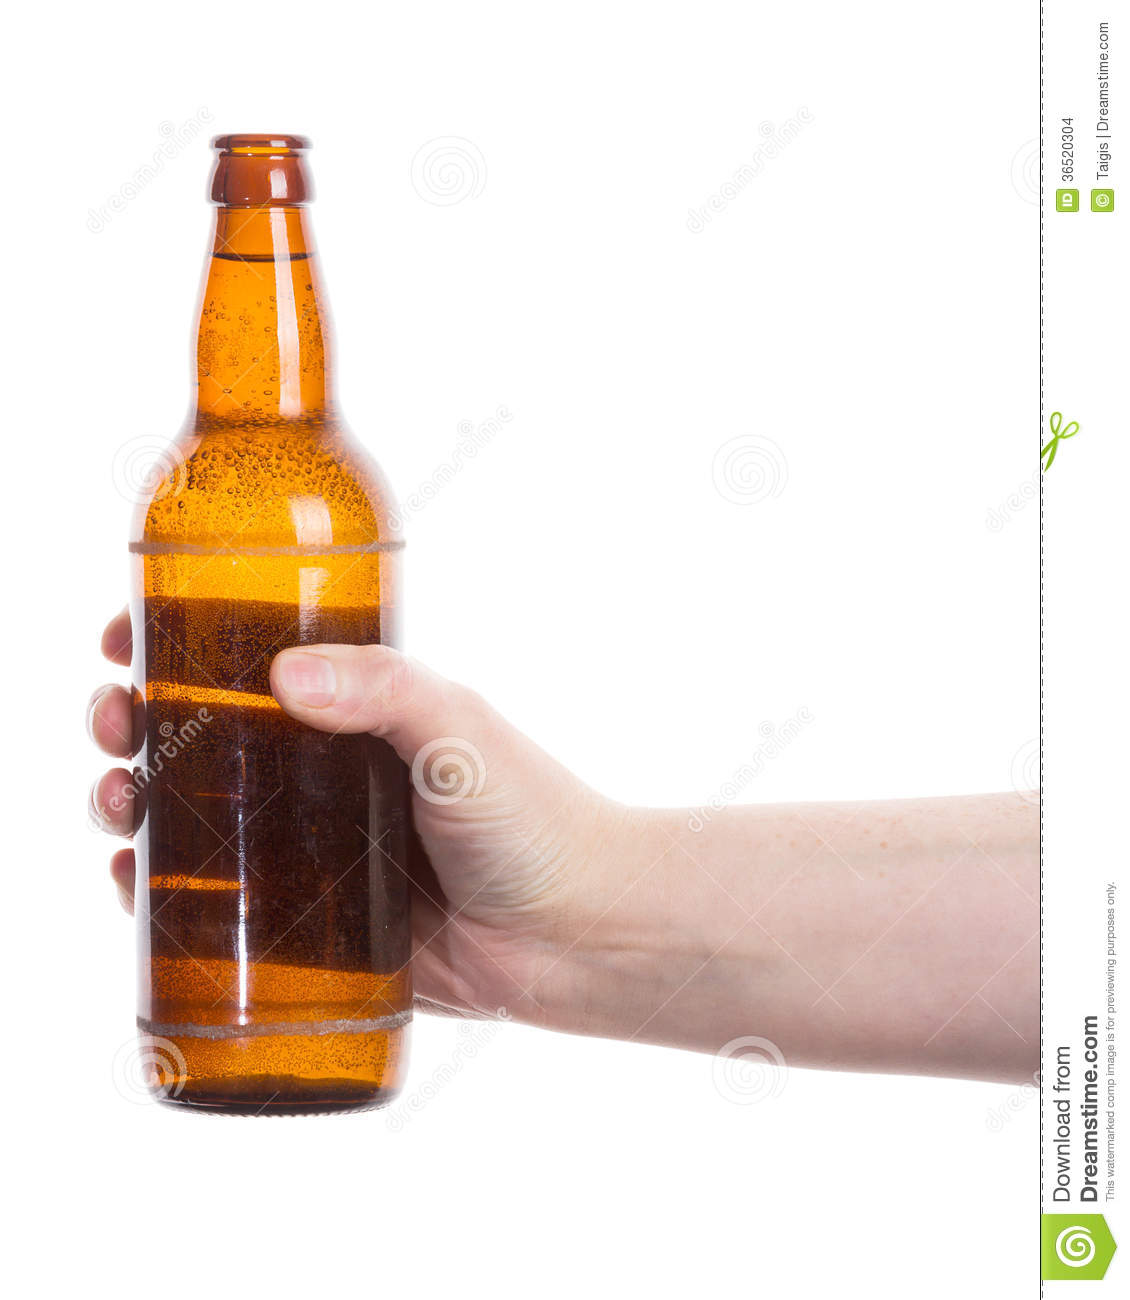 how to hold a beer bottle